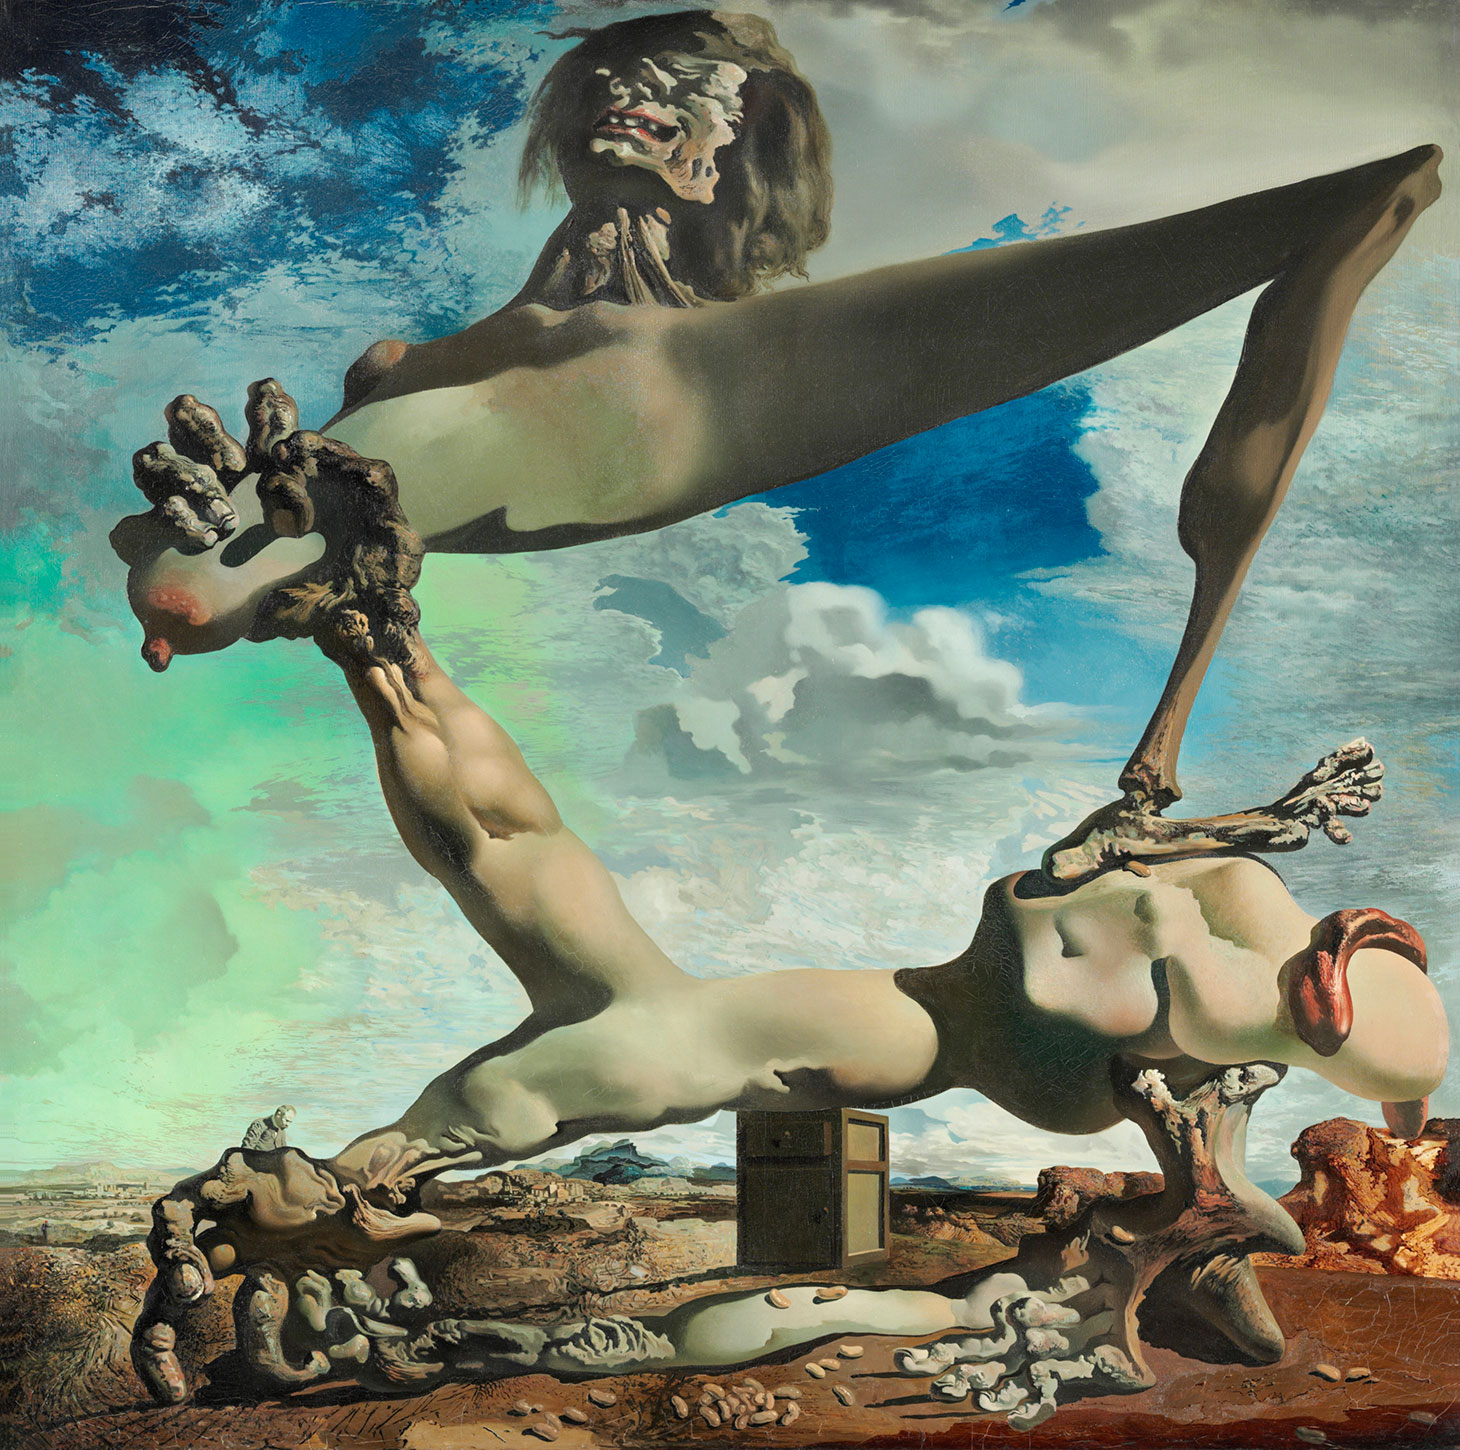 The Horrors and Delights of the Surrealist Subconscious